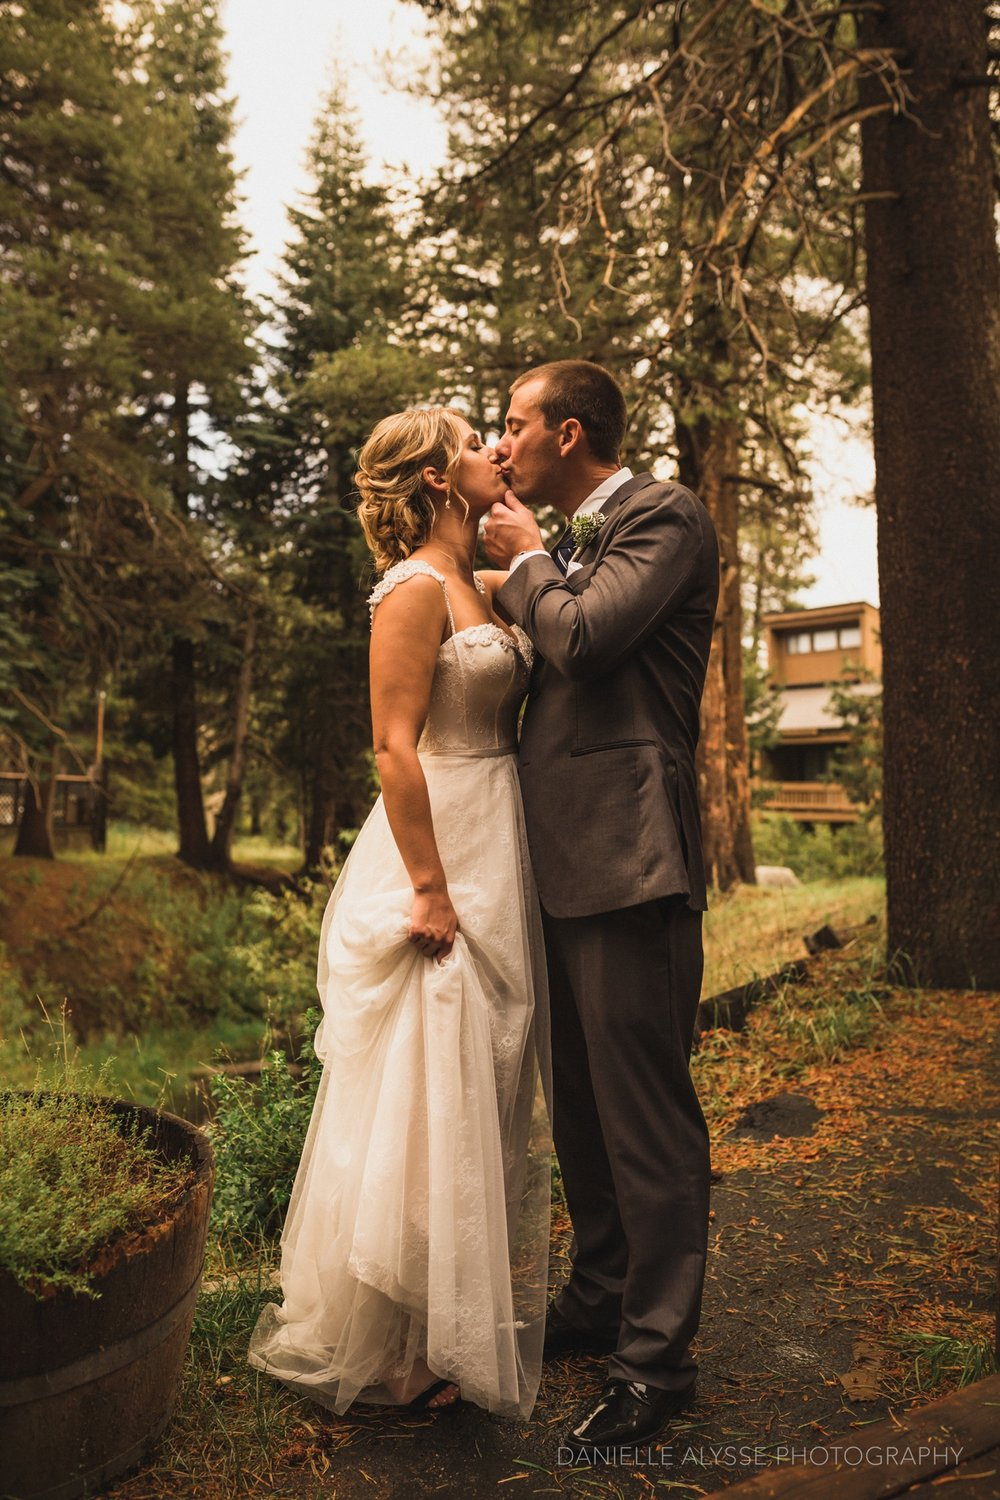 170819_blog_leslie_jeremy_wedding_bear_valley_lodge_arnold_danielle_alysse_photography_sacramento_photographer_deliver692_WEB.jpg